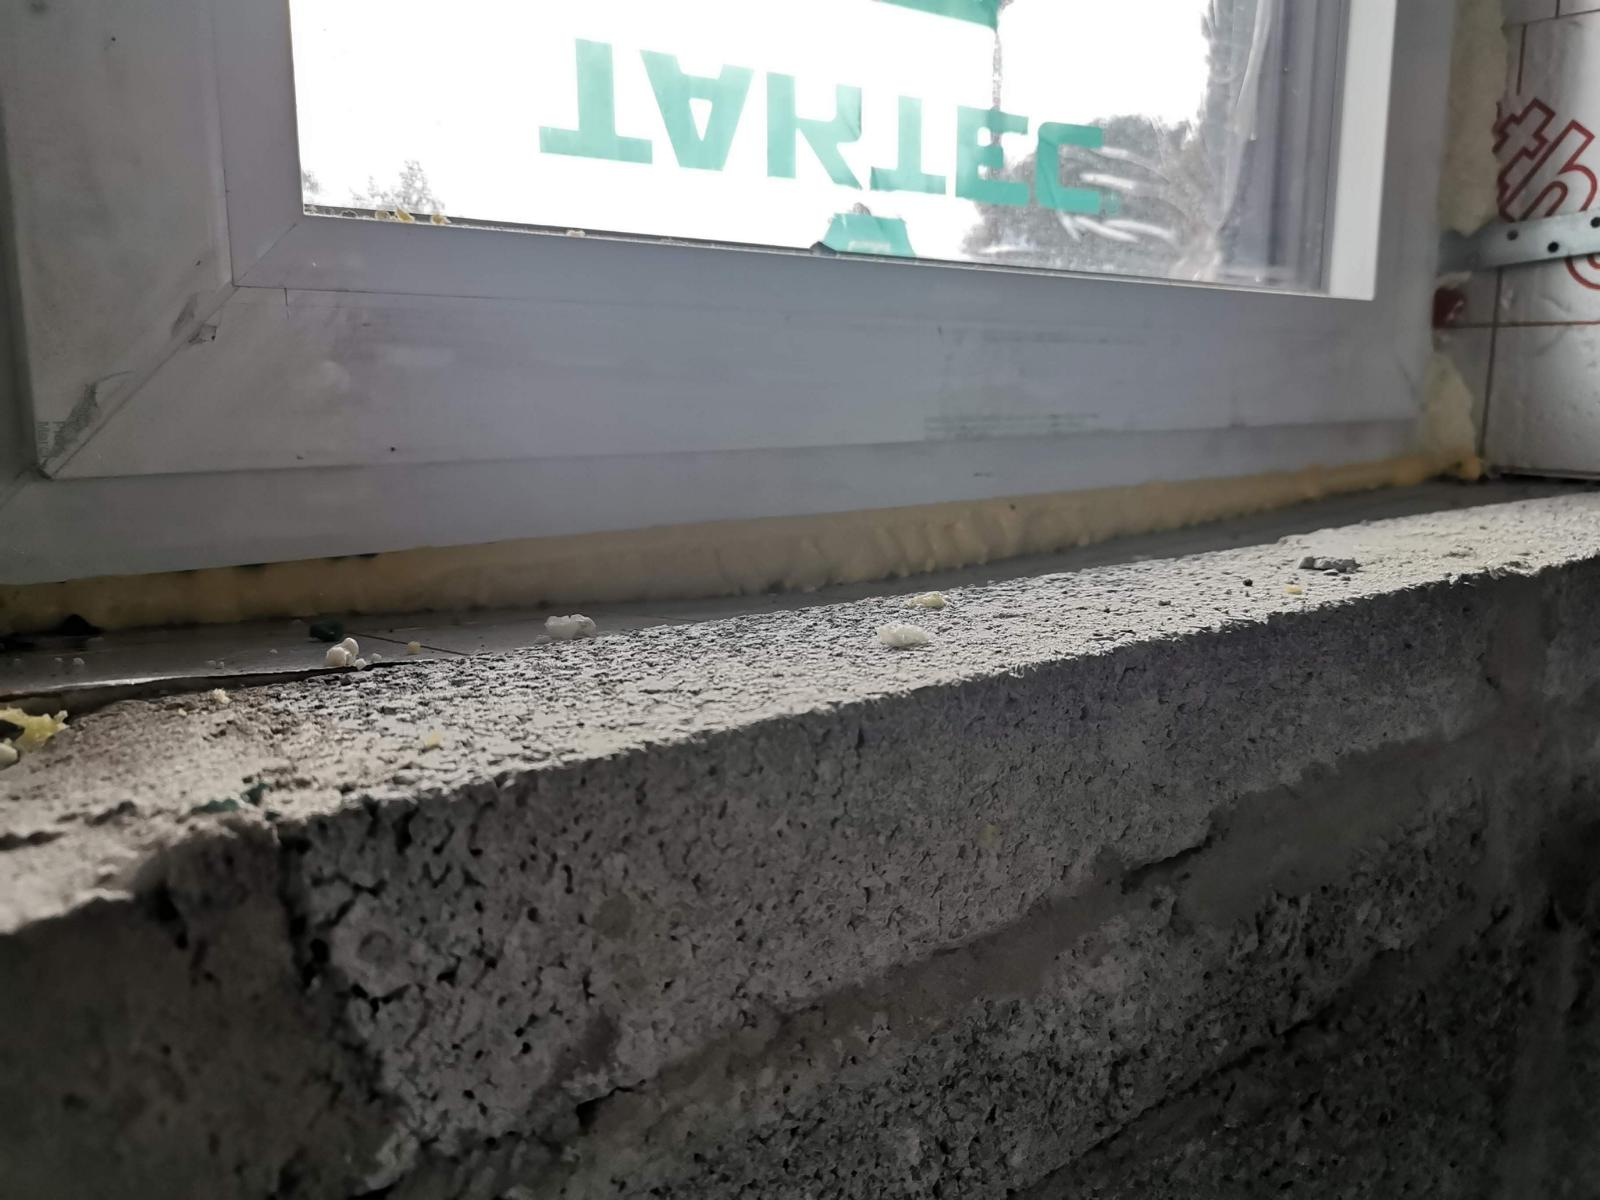 To keep the DPC tight against the cill & window frame, when the windows have been installed already, just fill expanding foam between the horizontal cavity wall closer and the DPC